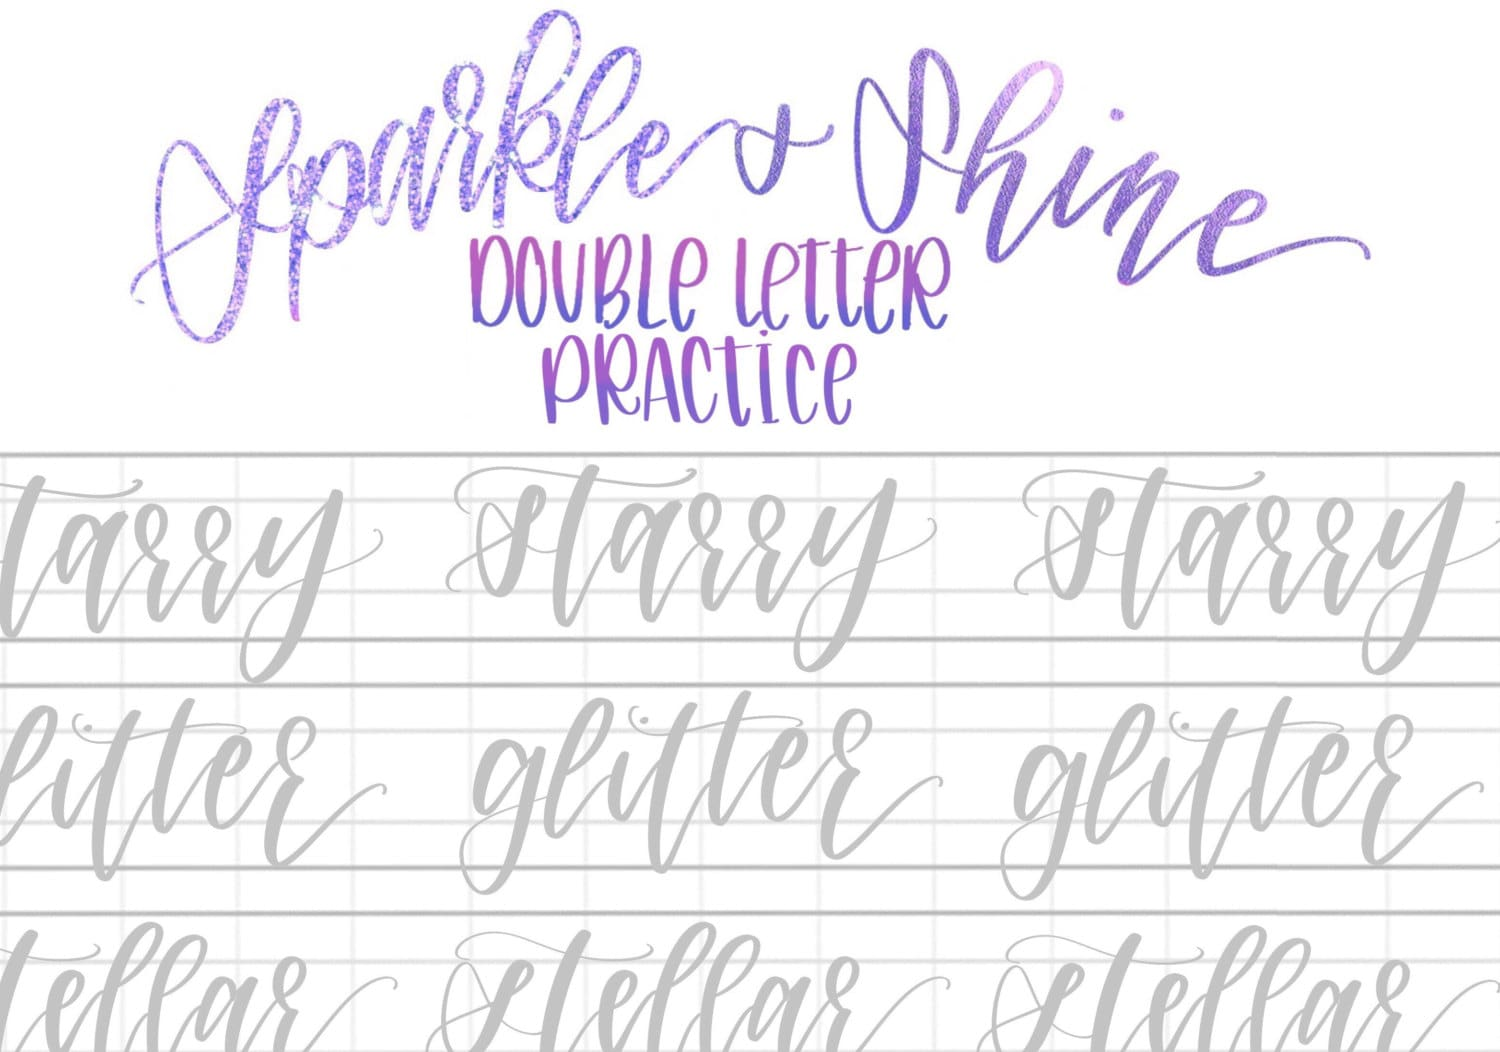 Worksheets Calligraphy Practice Worksheets hand lettering practice sheets sparkly double letter words